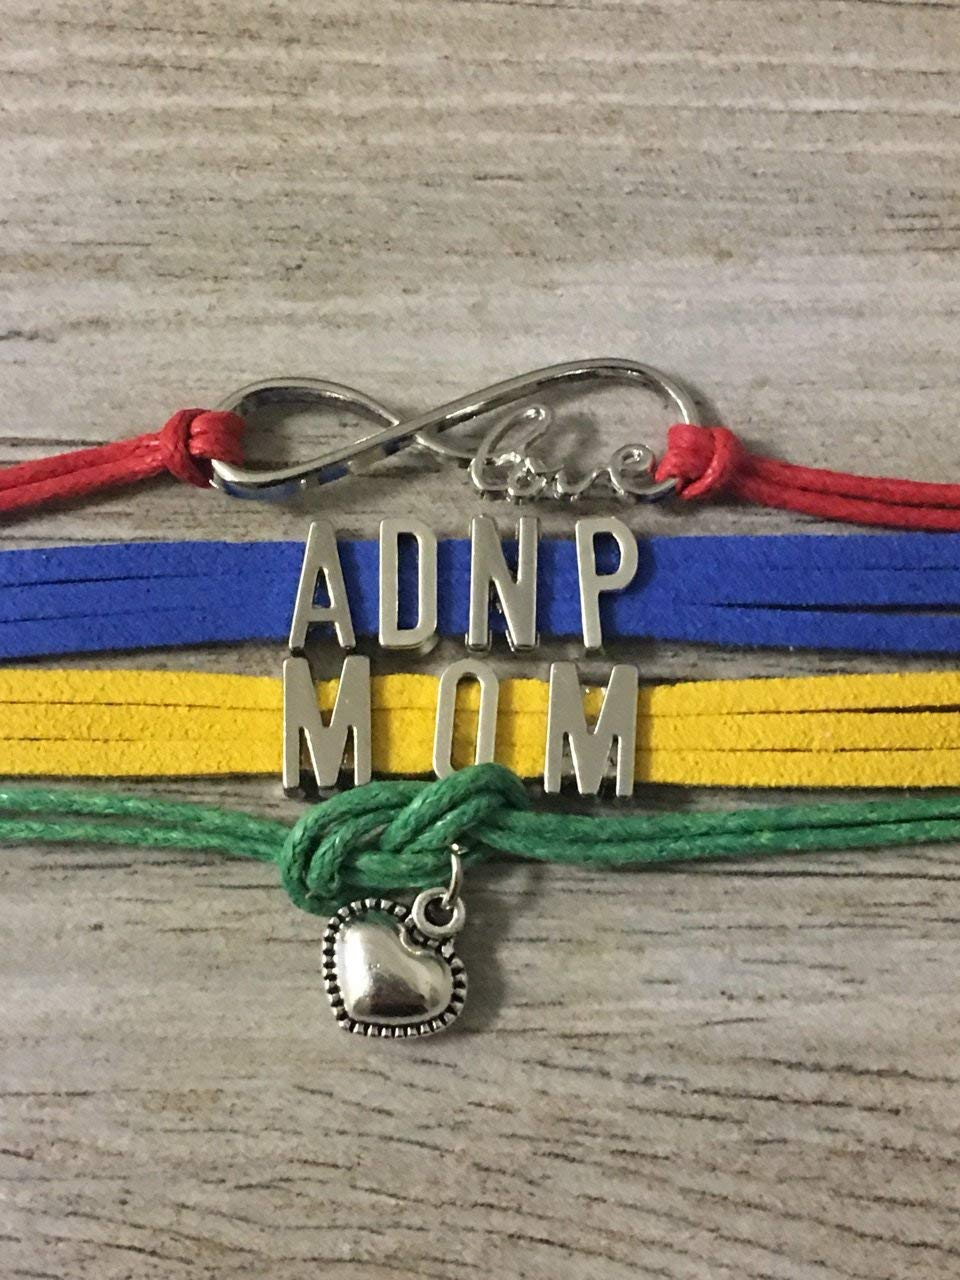 Autism ADNP Mom Bracelet, Autism Awareness Jewelry, Makes the Perfect Gift for Mom